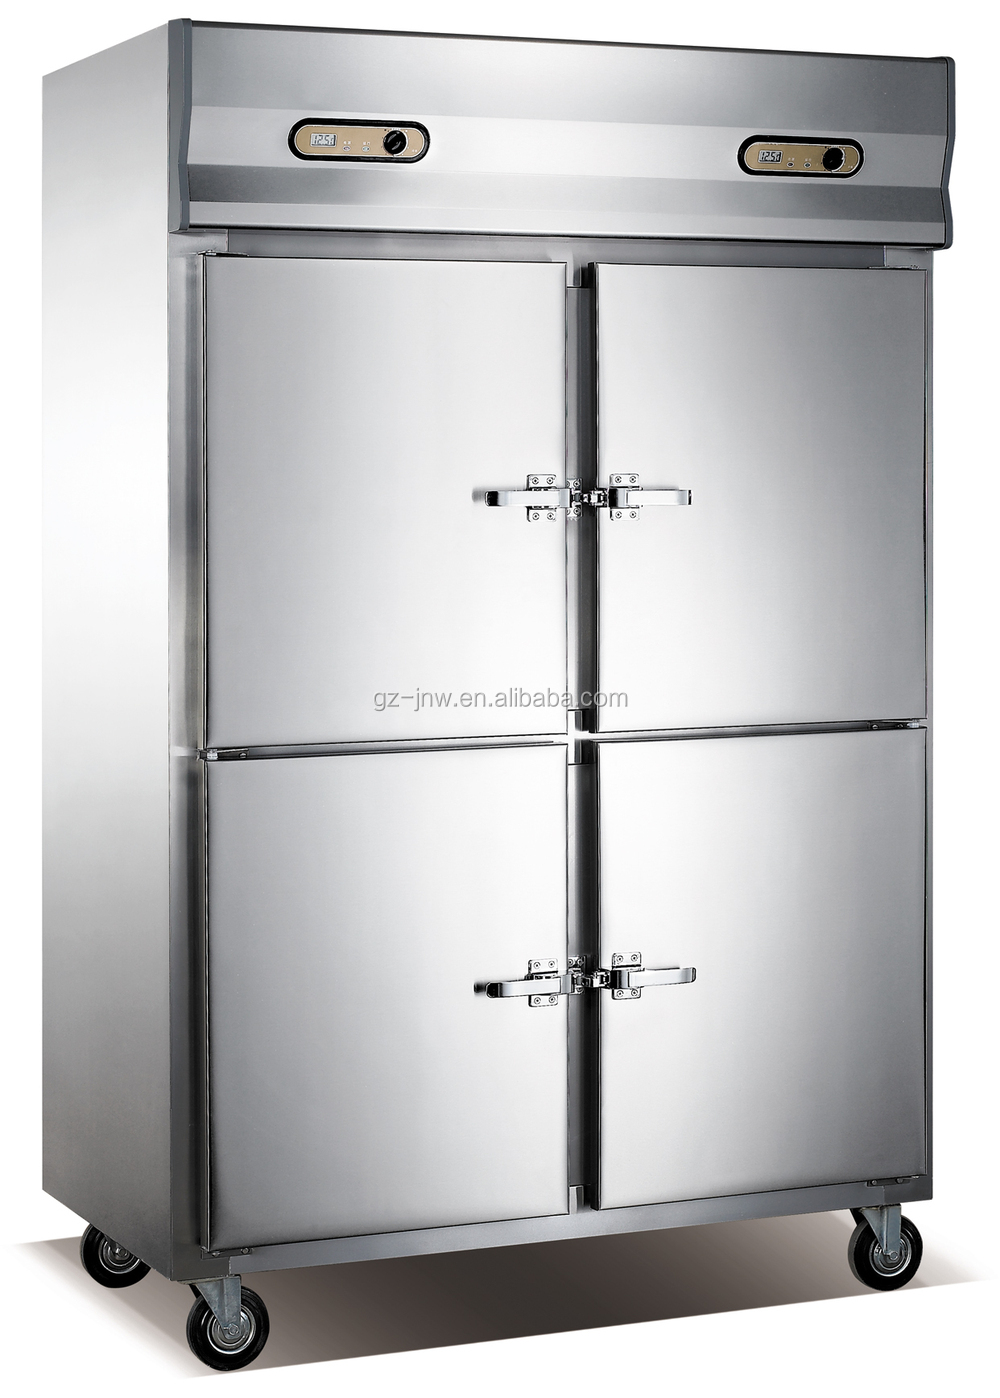 Restaurant Kitchen Stainless Steel 4 Door Freezer Commercial Side By Side Refrigerator Freezer